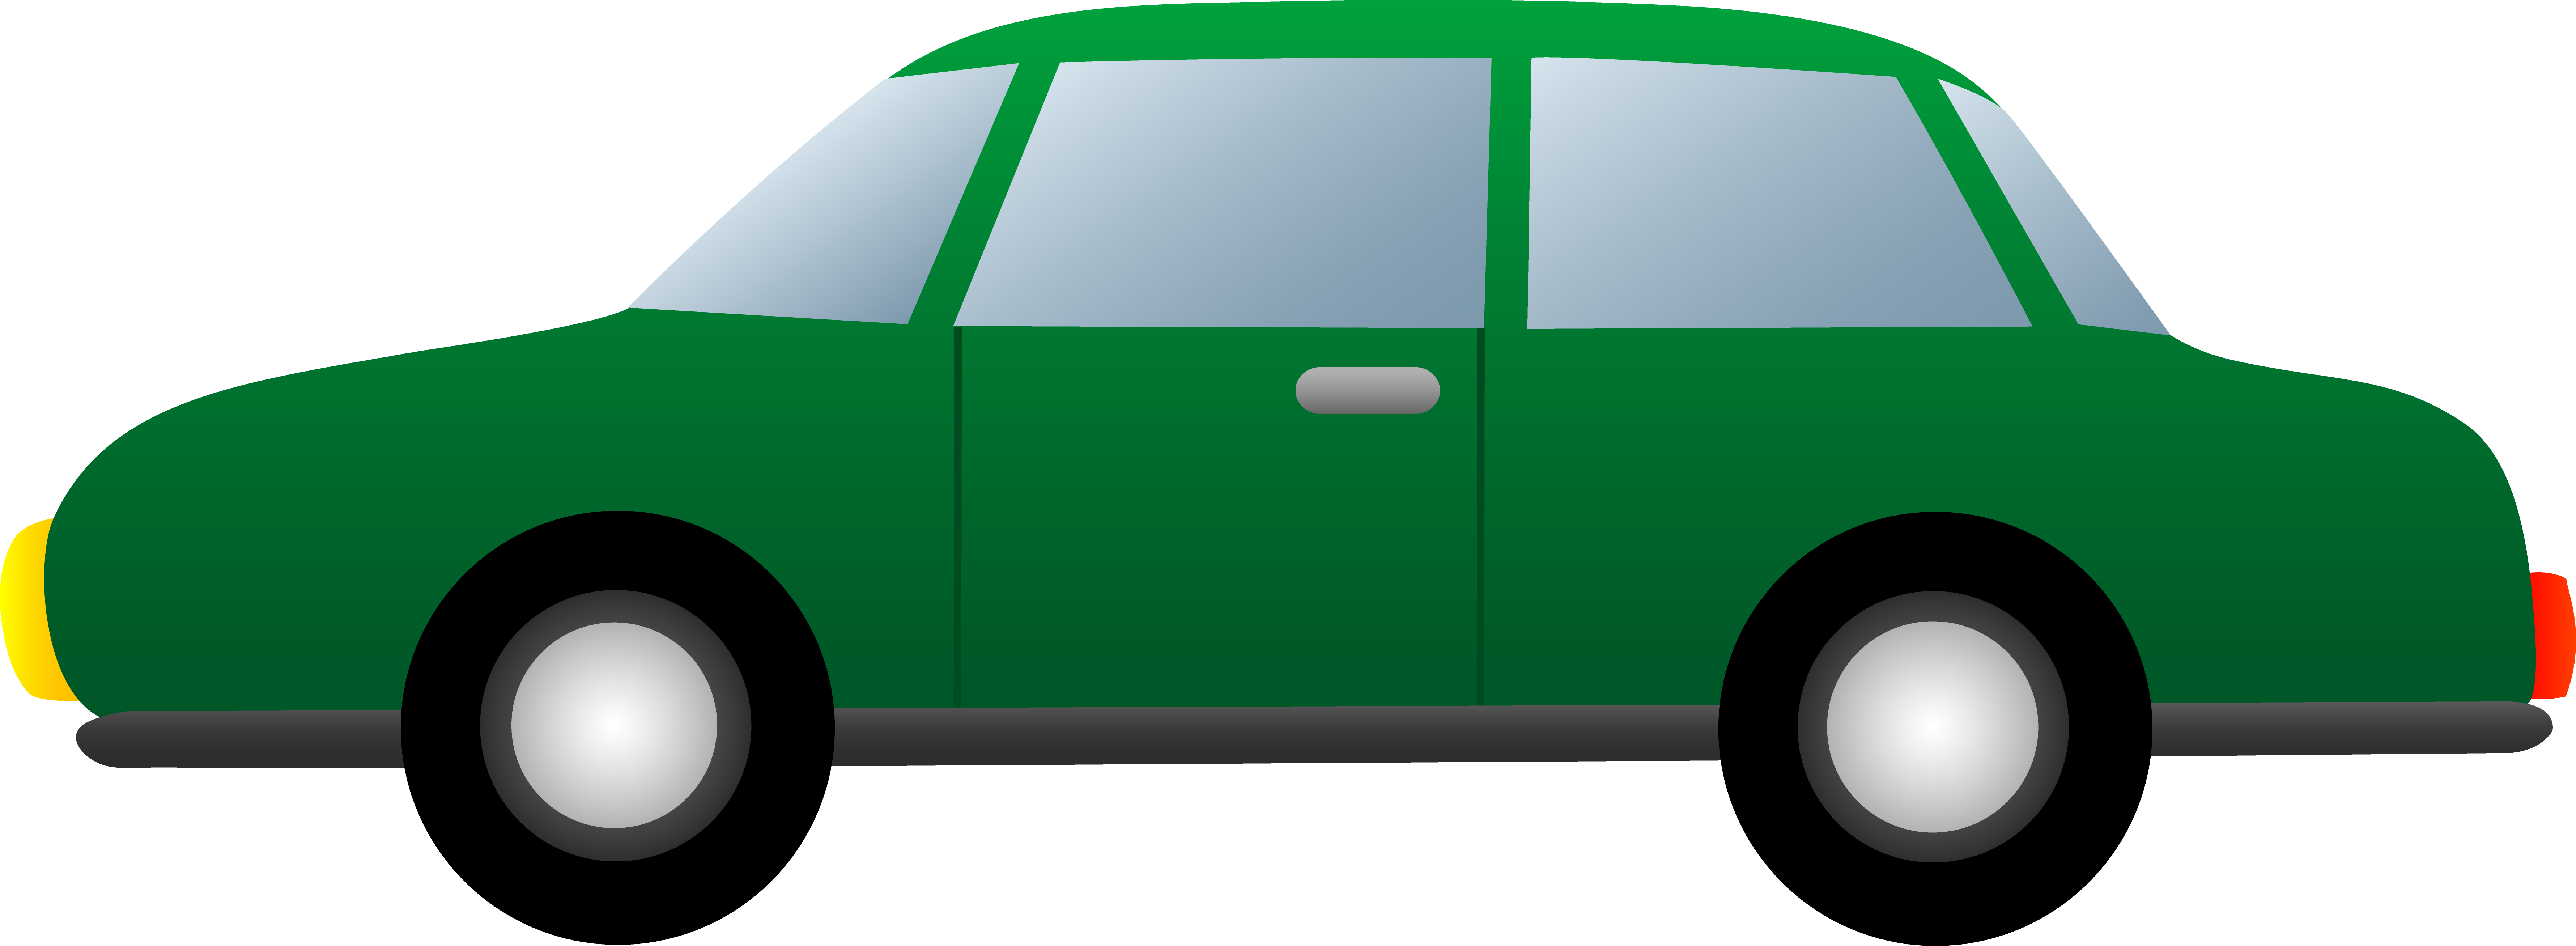 Clipart cars green. Car